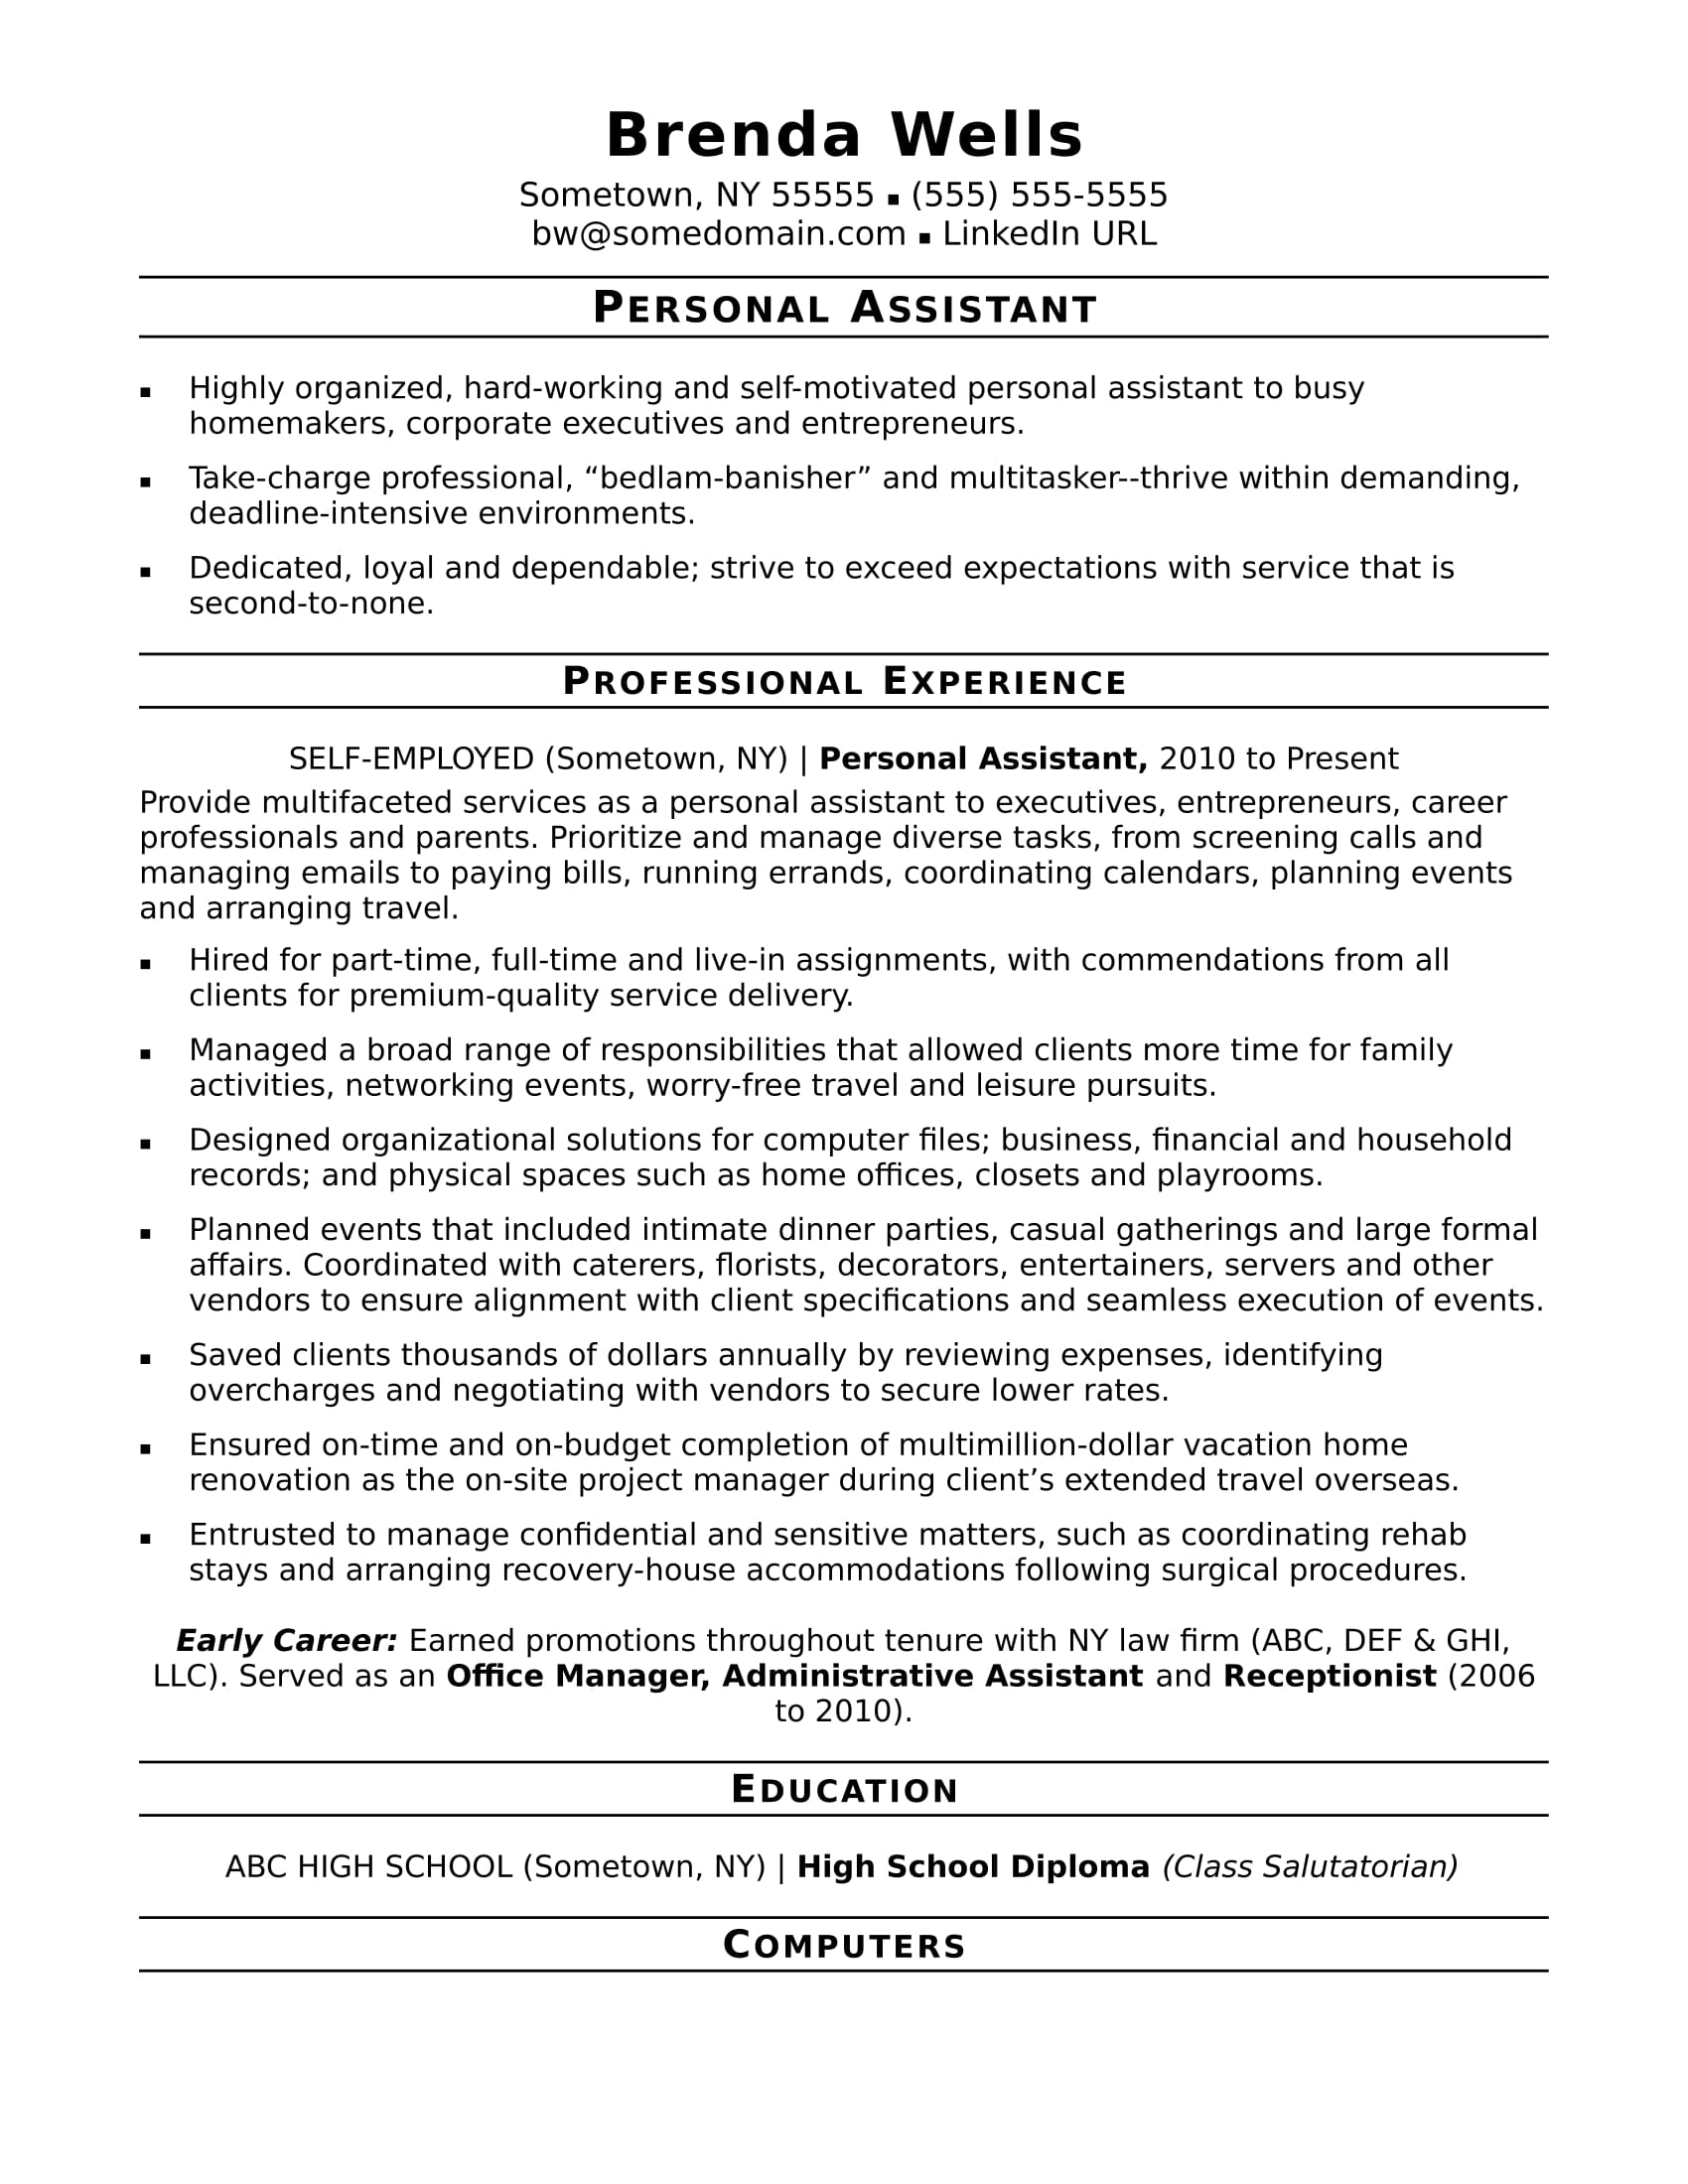 personal assistant resume sample monster self summary for free bootstrap theme objective Resume Self Summary For Resume Sample